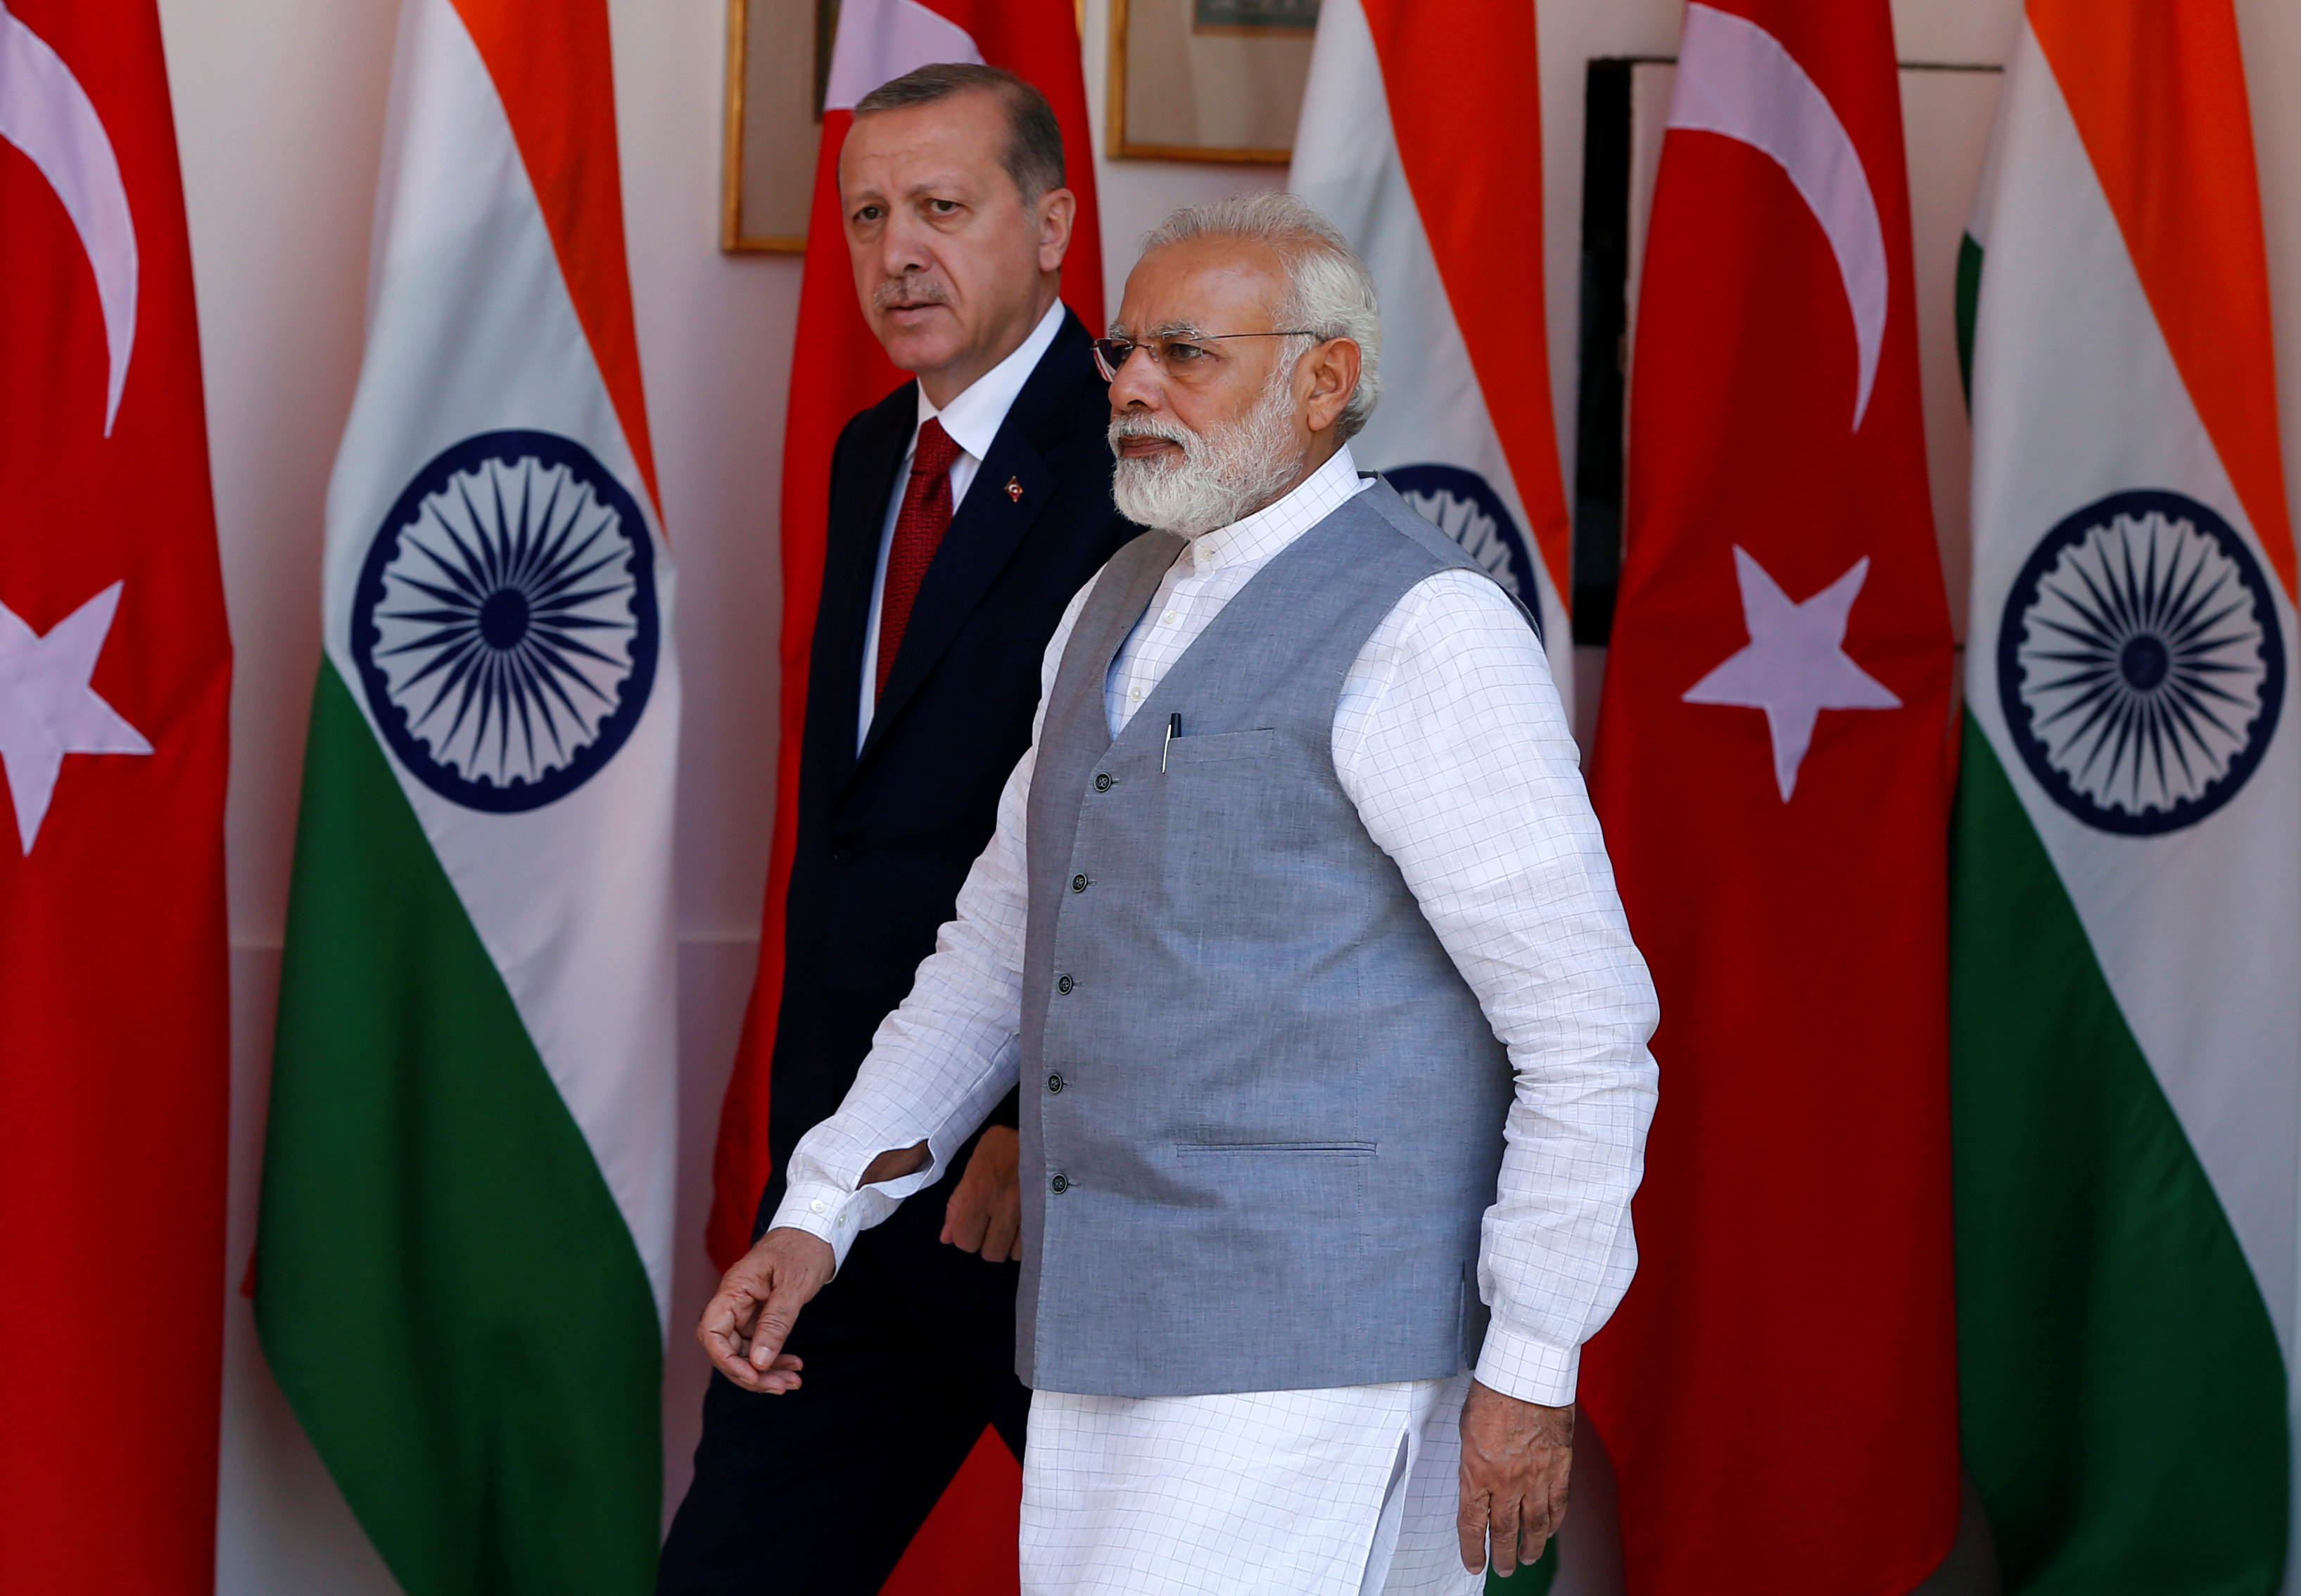 Turkish President Tayyip Erdogan (L) and India's Prime Minister Narendra Modi arrive for a photo opportunity ahead of their meeting at Hyderabad House in New Delhi, India, May 1, 2017.